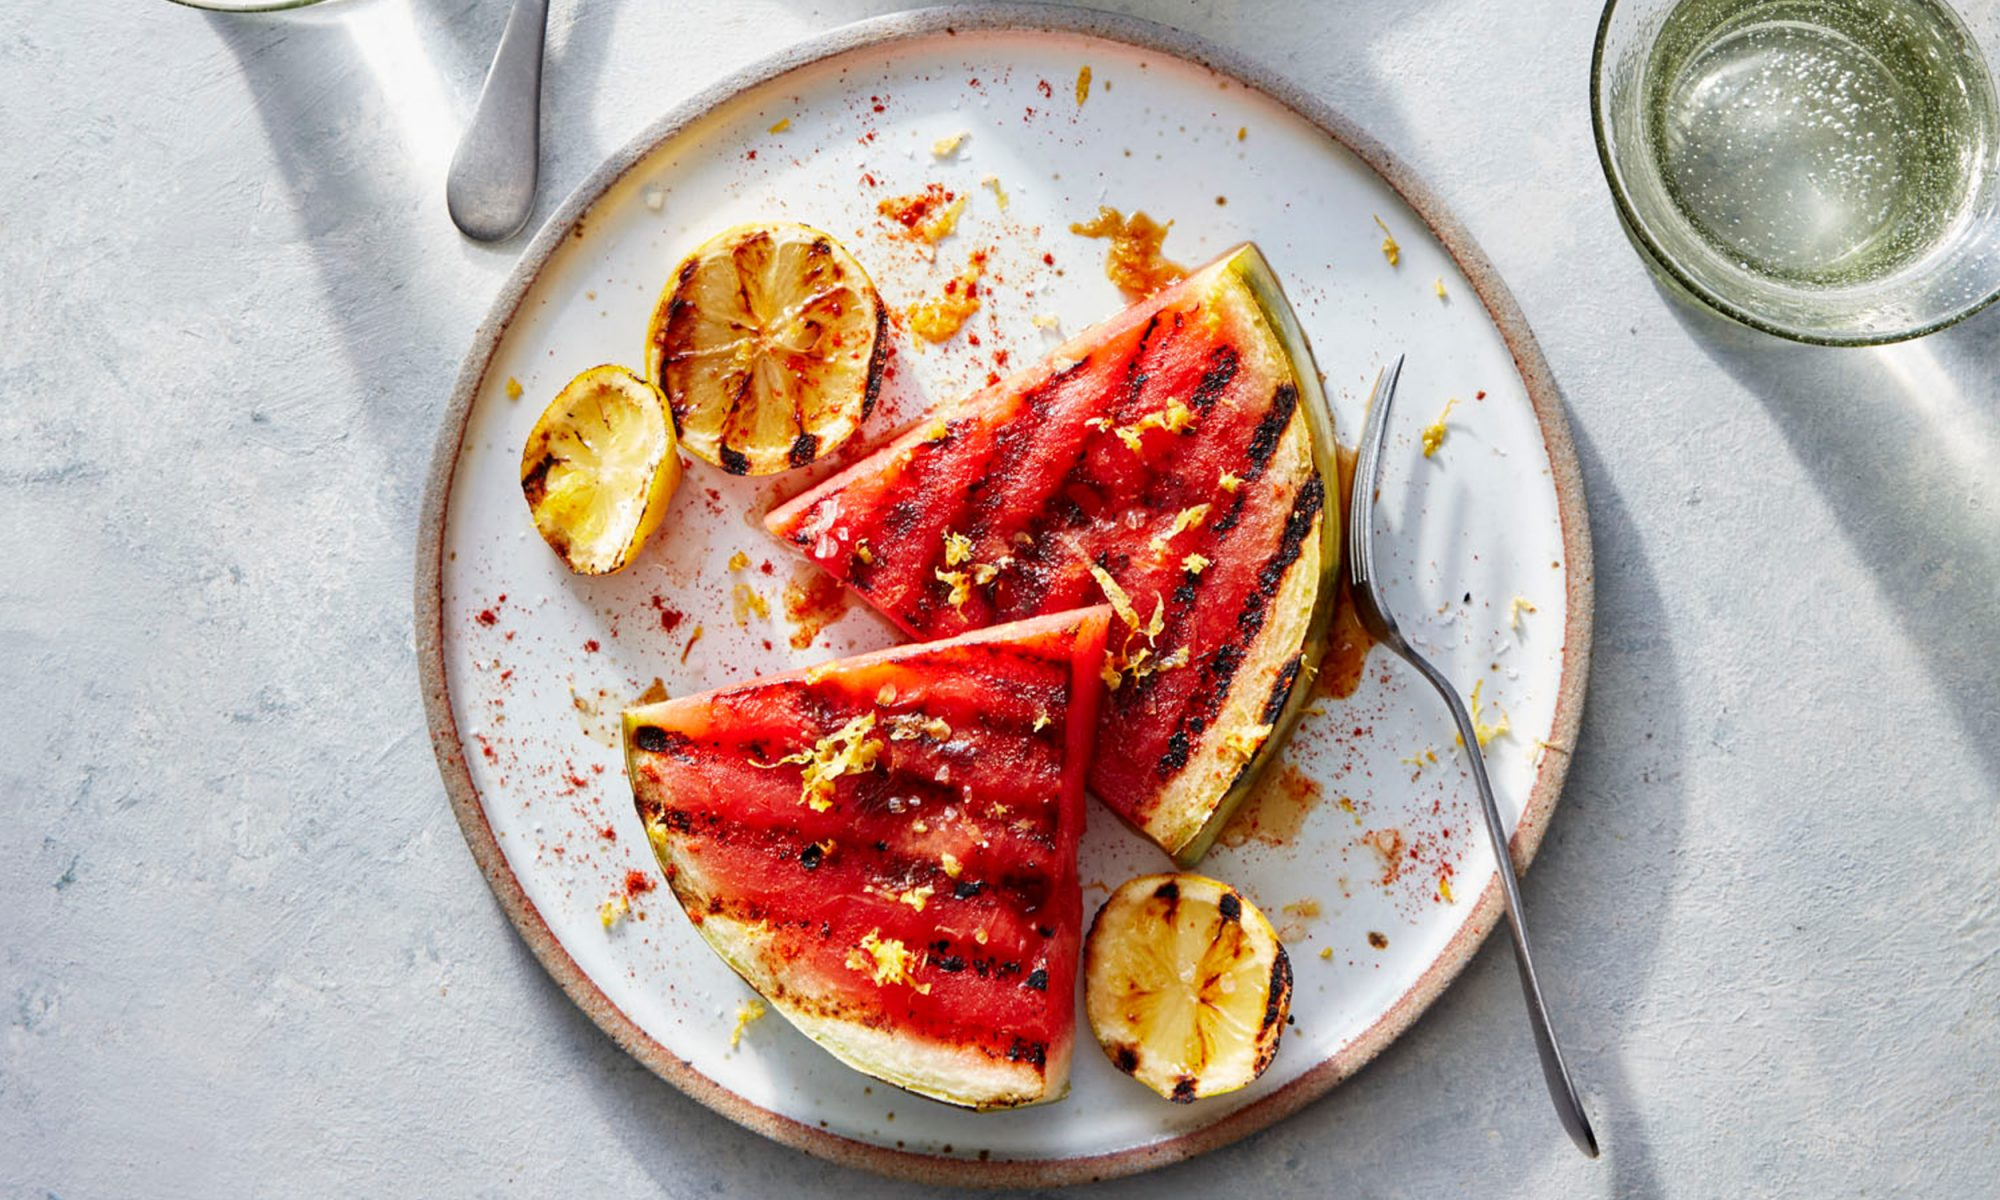 EC: Grilled Watermelon Is the Ultimate Summer Snack